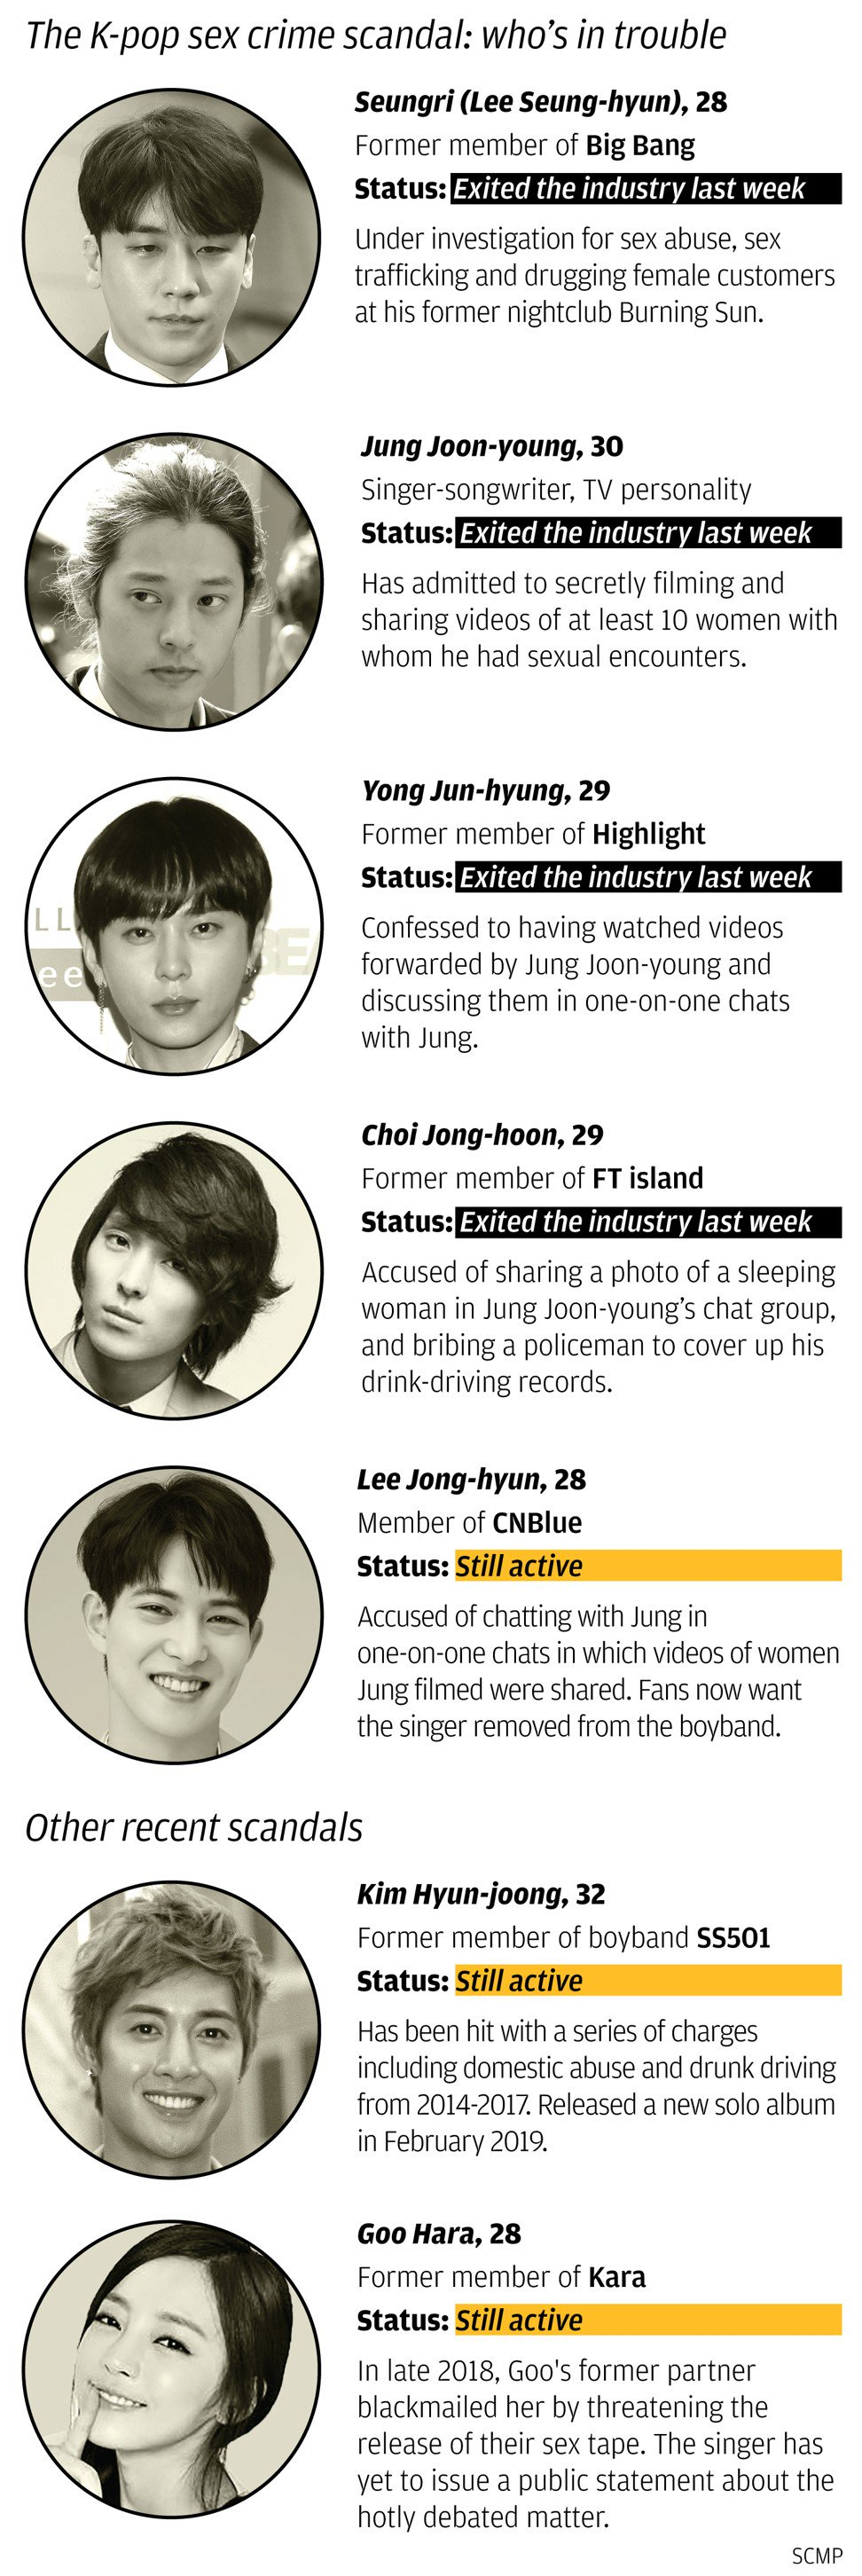 K-pop stars who have been embroiled in sex scandals.